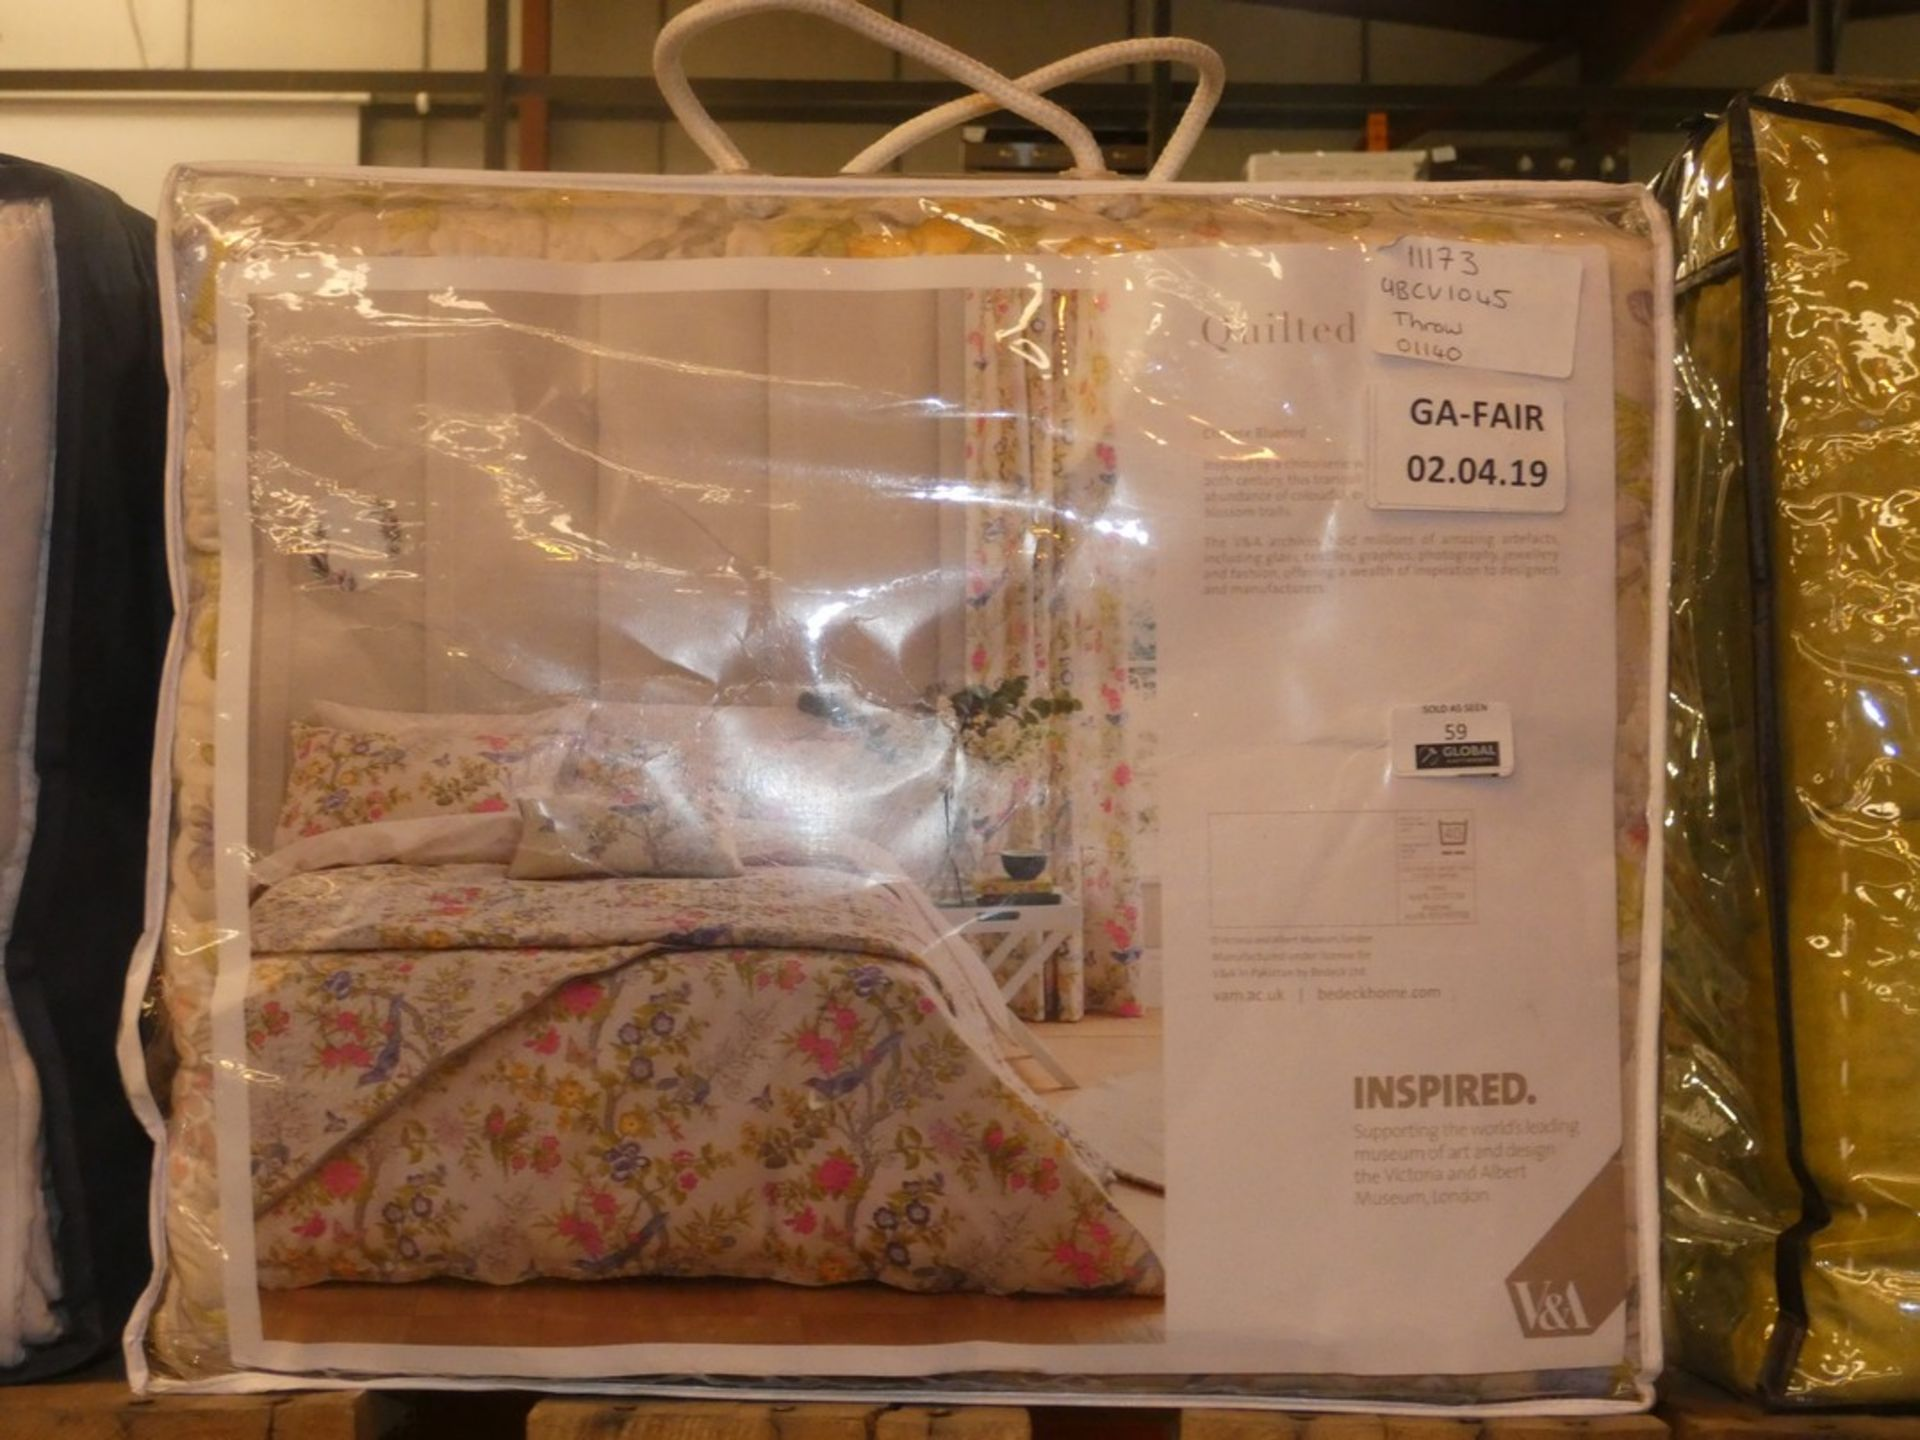 Lot 59 - Bagged VA Inspired Chinese Bluebird Quilted Throw RRP £115 (UBV13045)(11173)